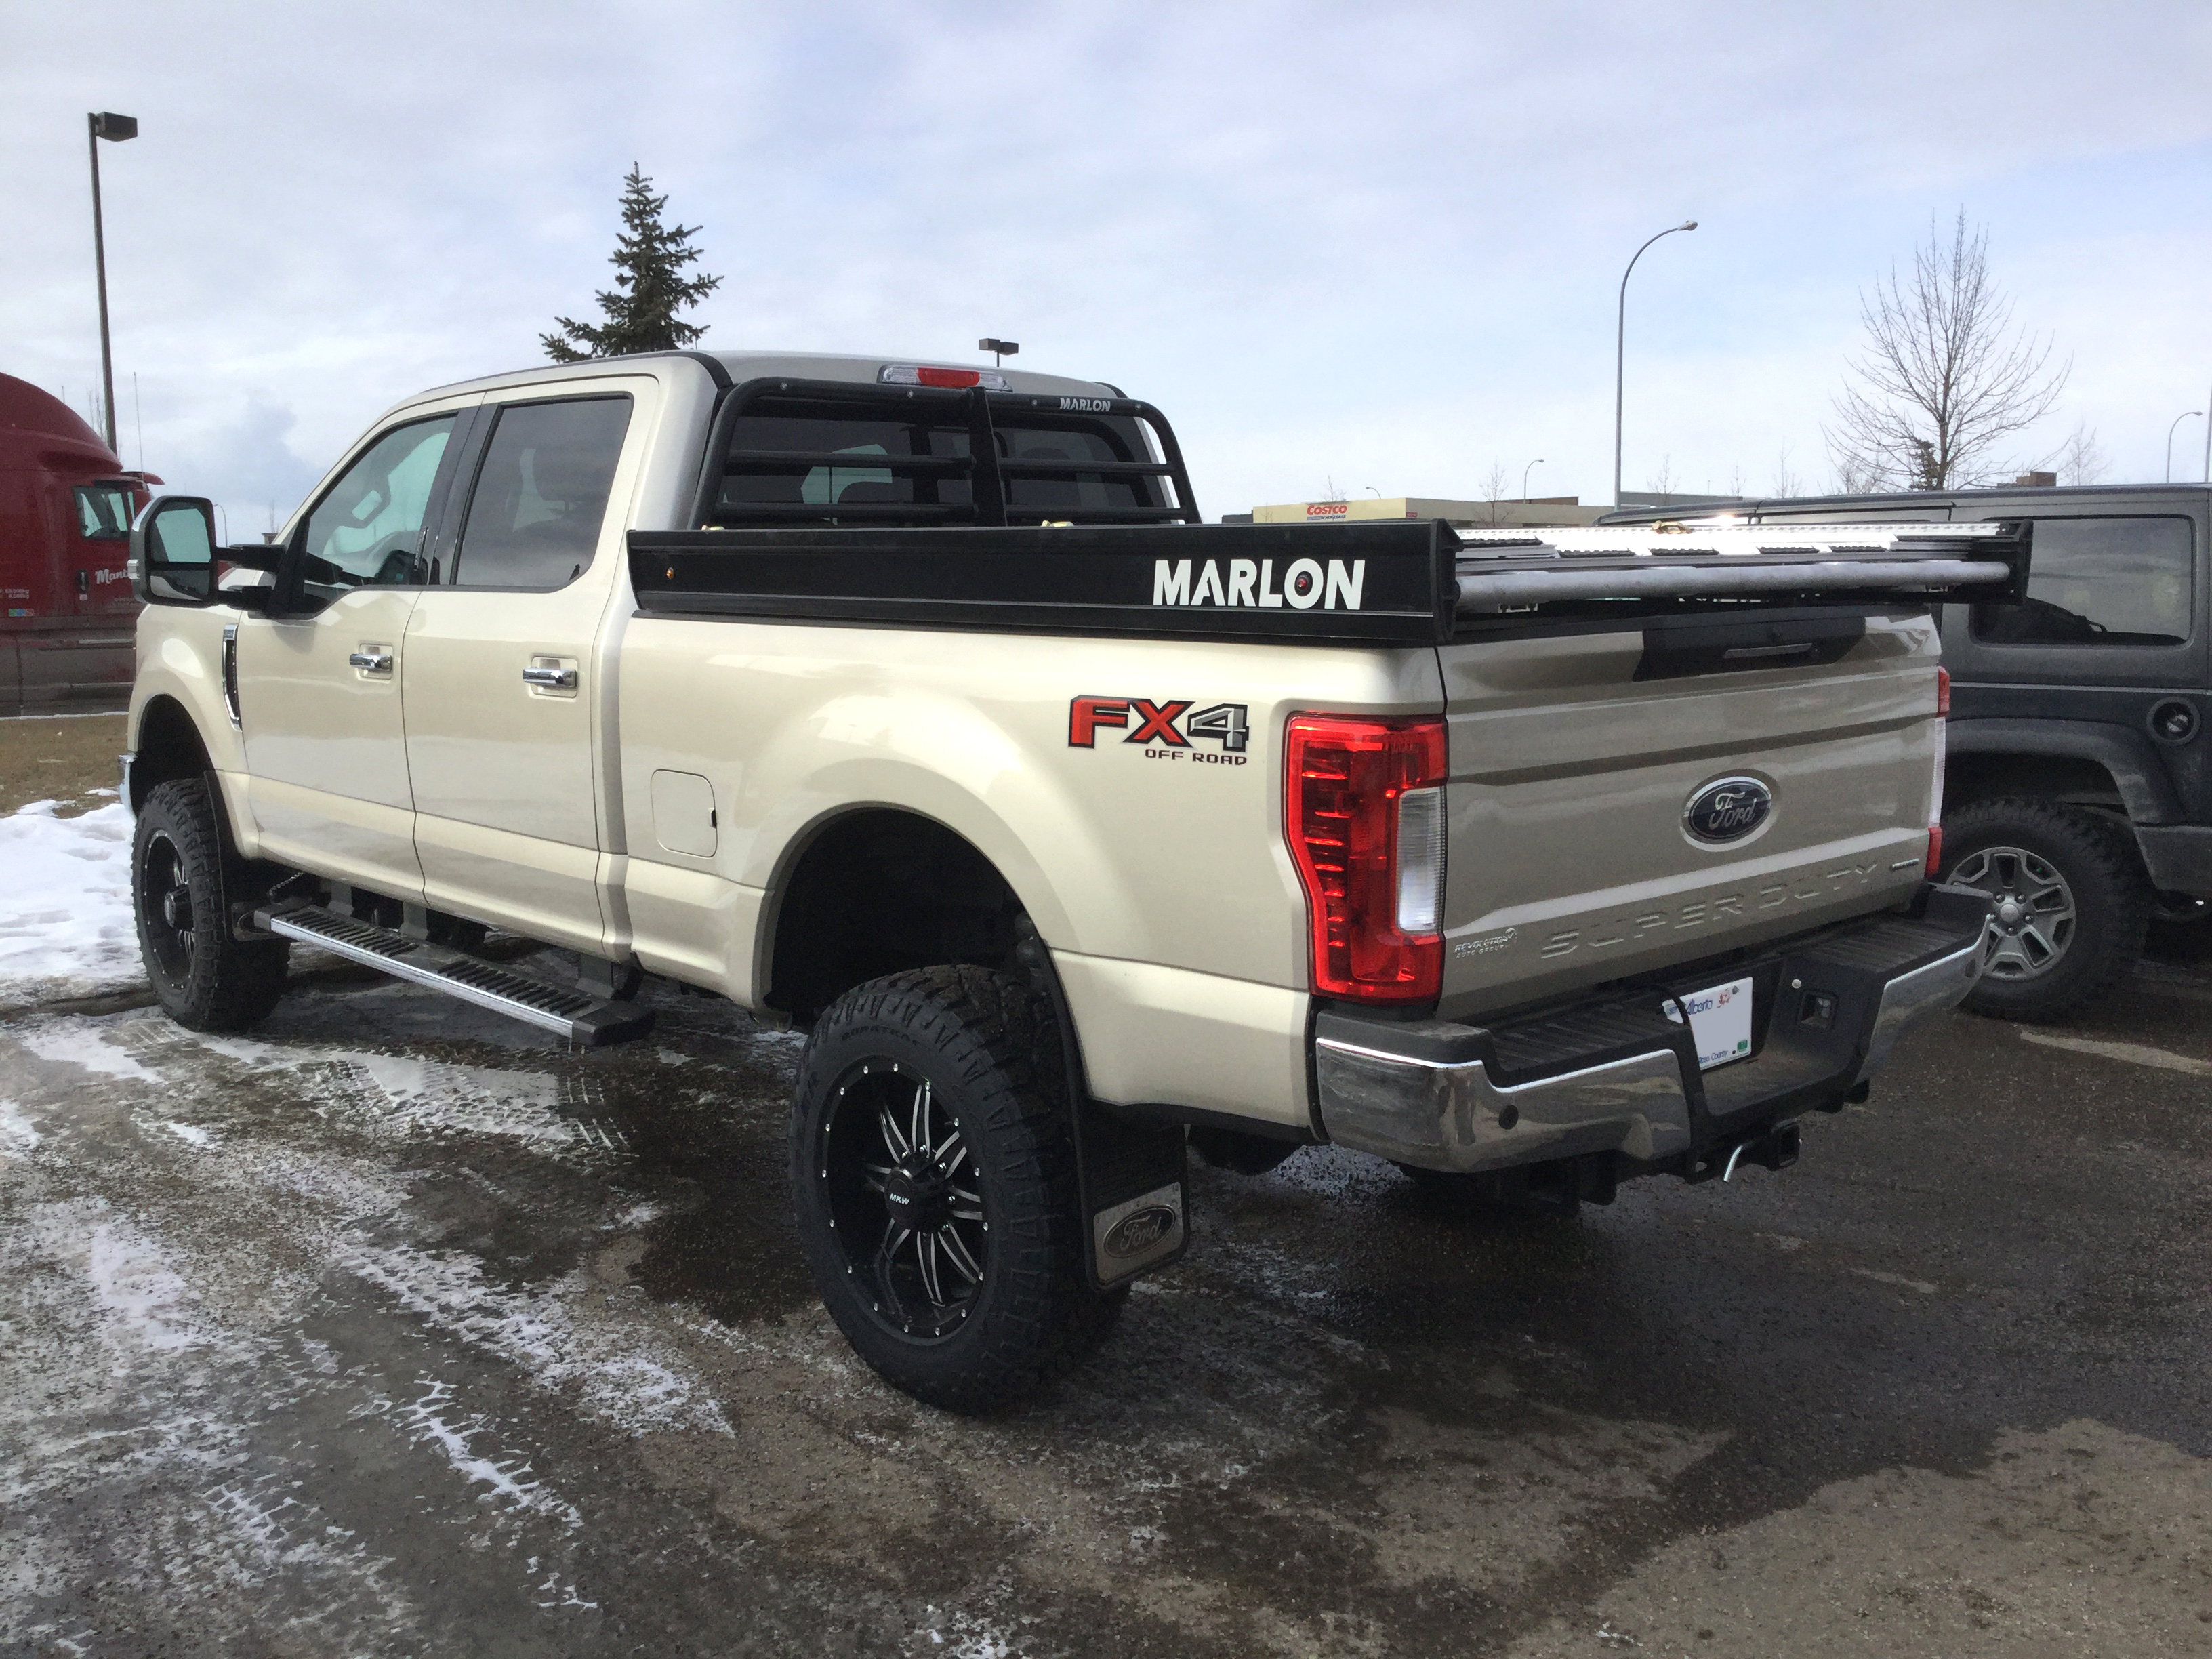 Ford Raptor Lifted Mudding Free Border Patrol Raptor Spotted Page